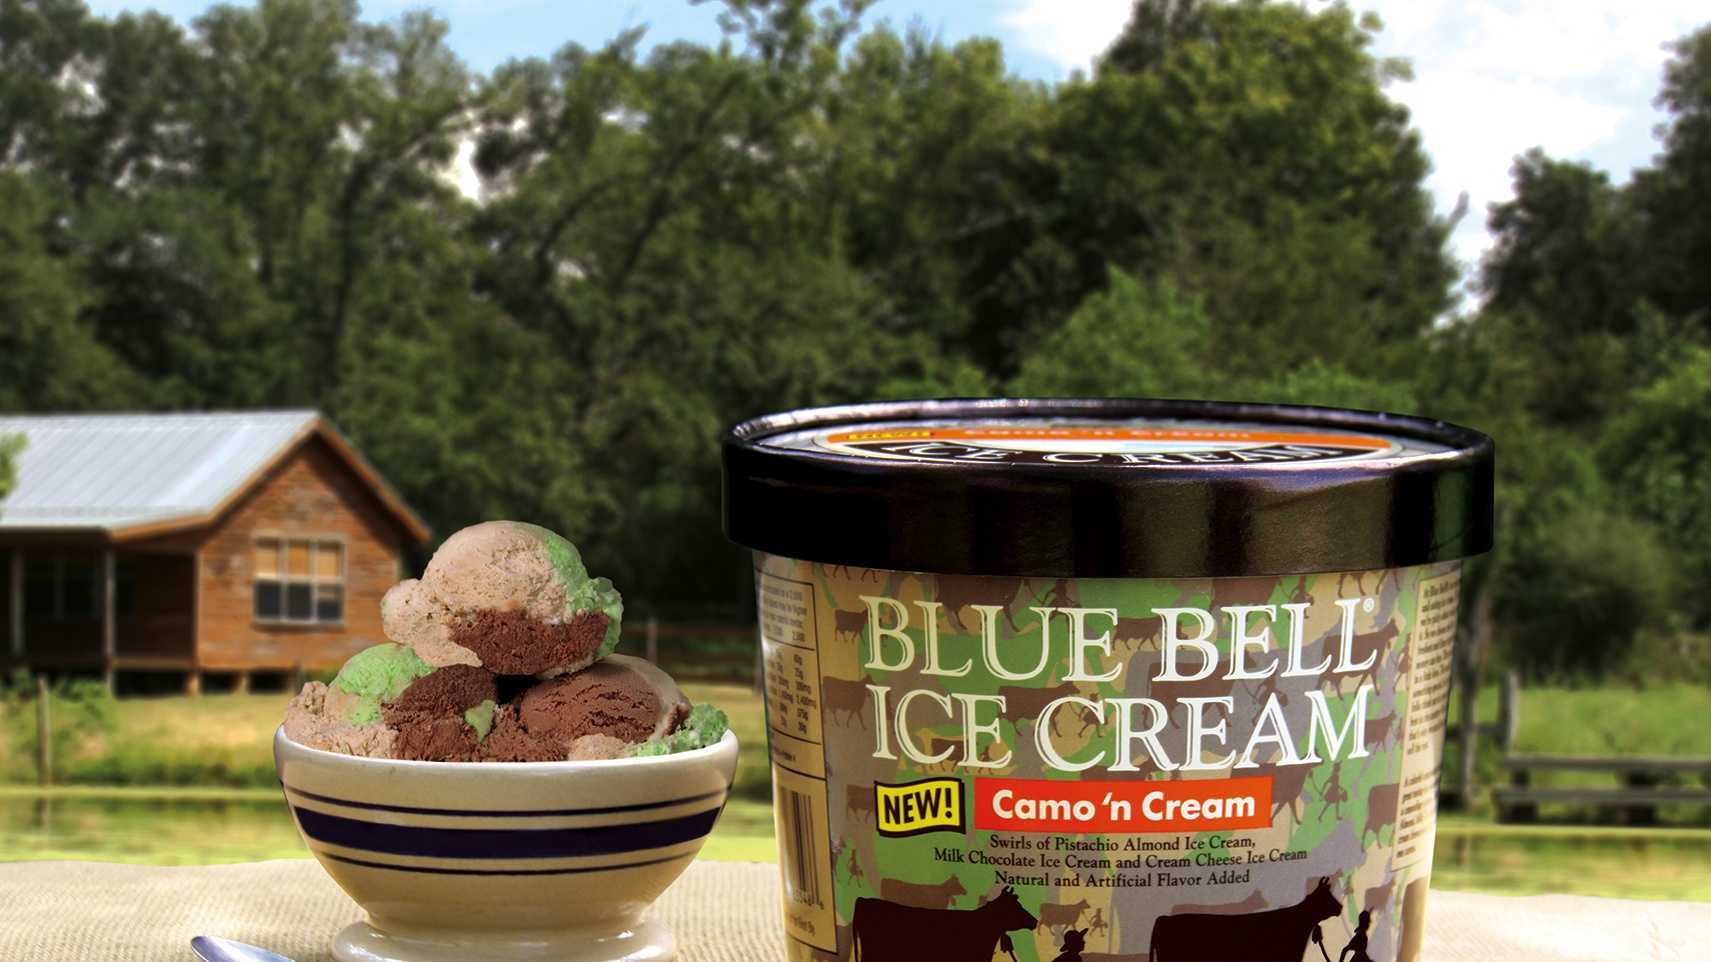 Blue Bell's newly-released Camo 'n Cream flavor is now available on store shelves.